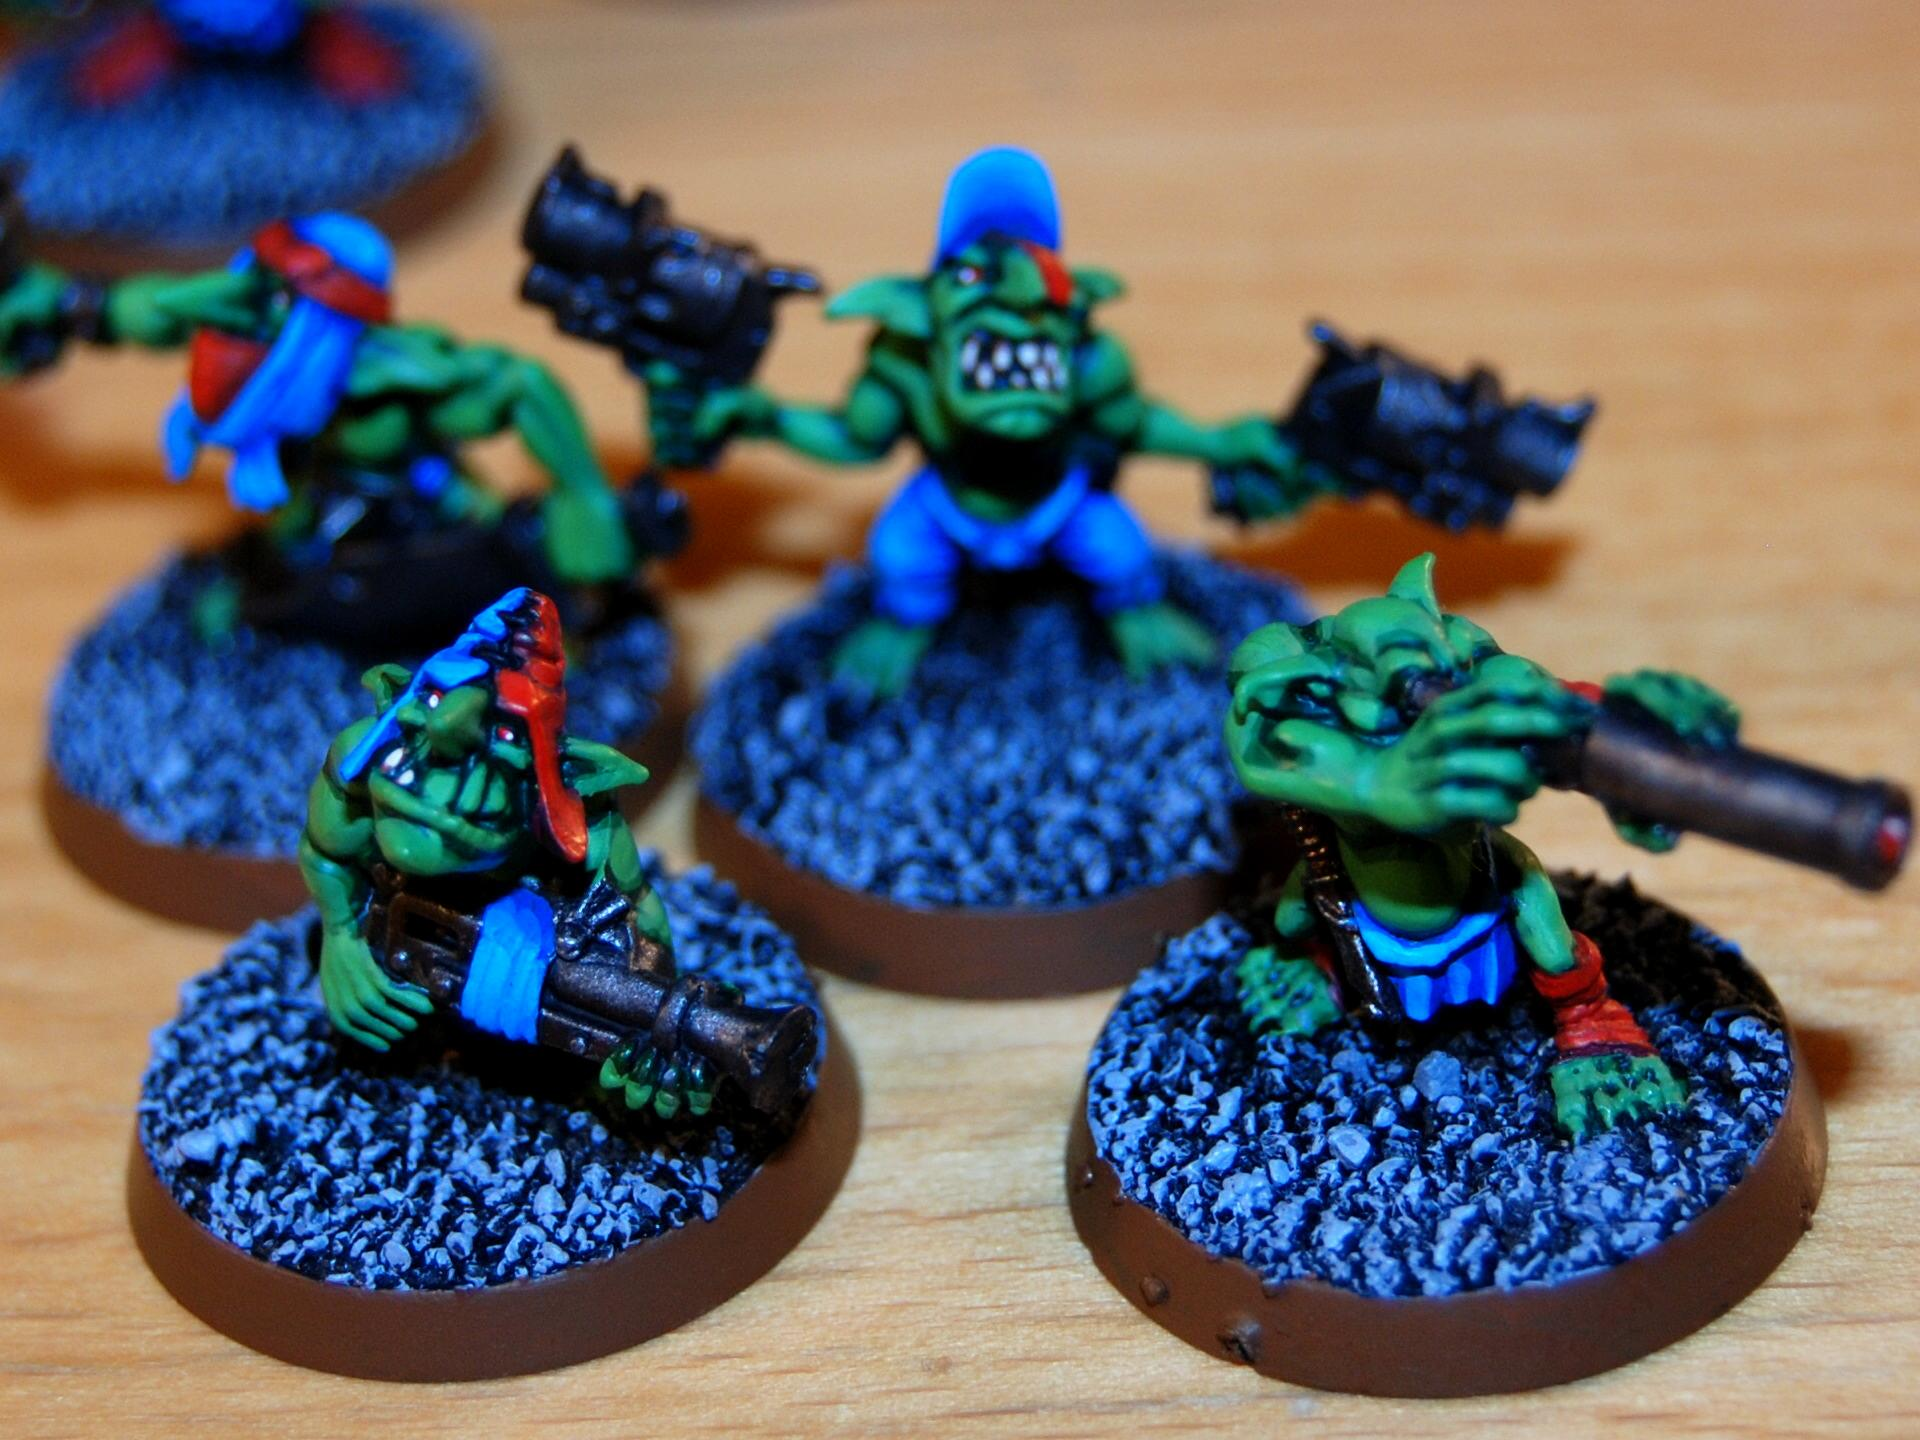 Gretchin, Grots, Grotz, Orks, Warhammer 40,000